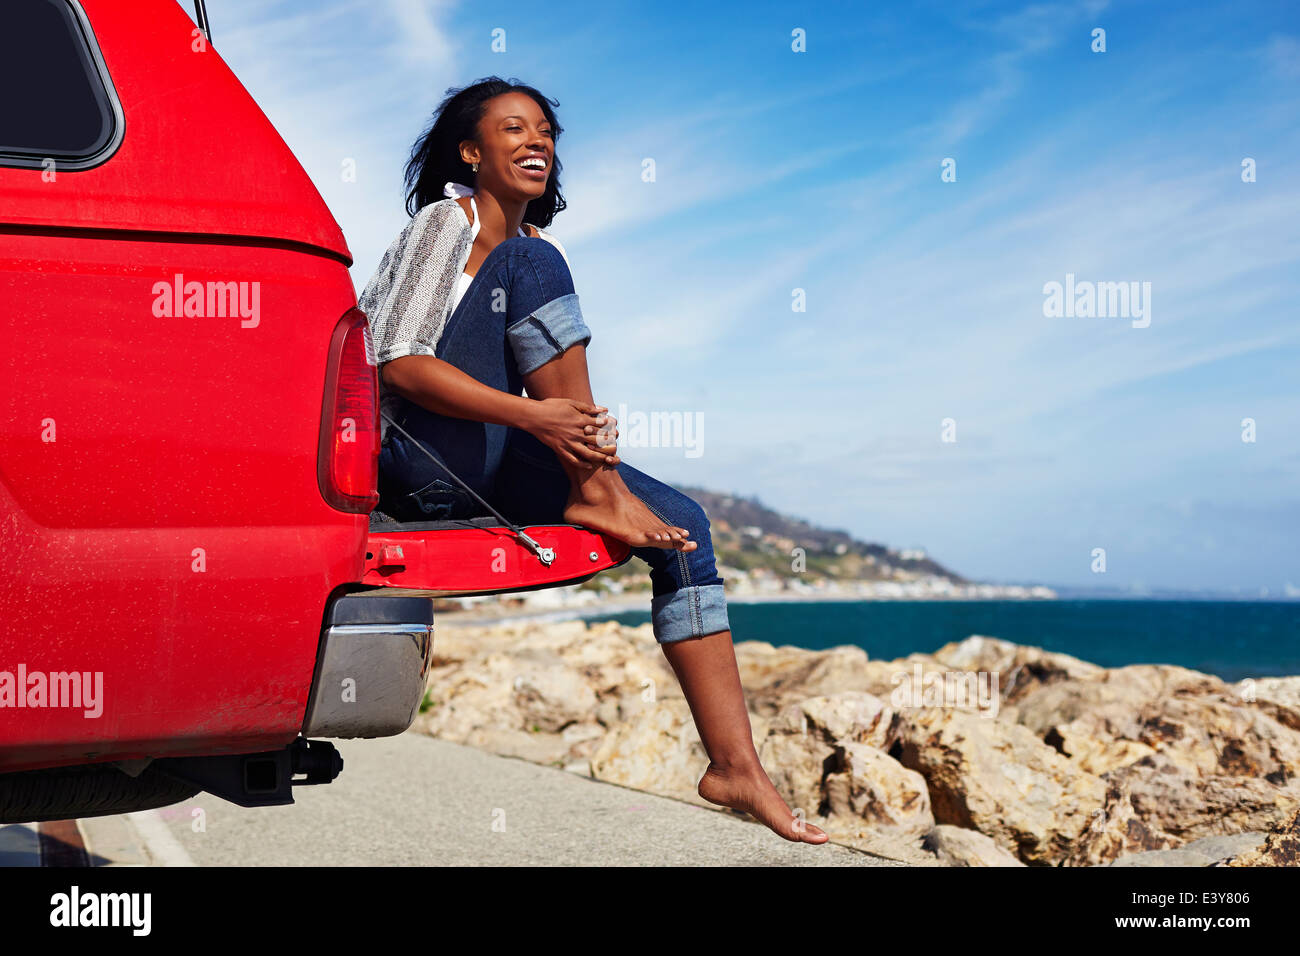 Young woman sitting on car hood, Malibu, California, USA - Stock Image